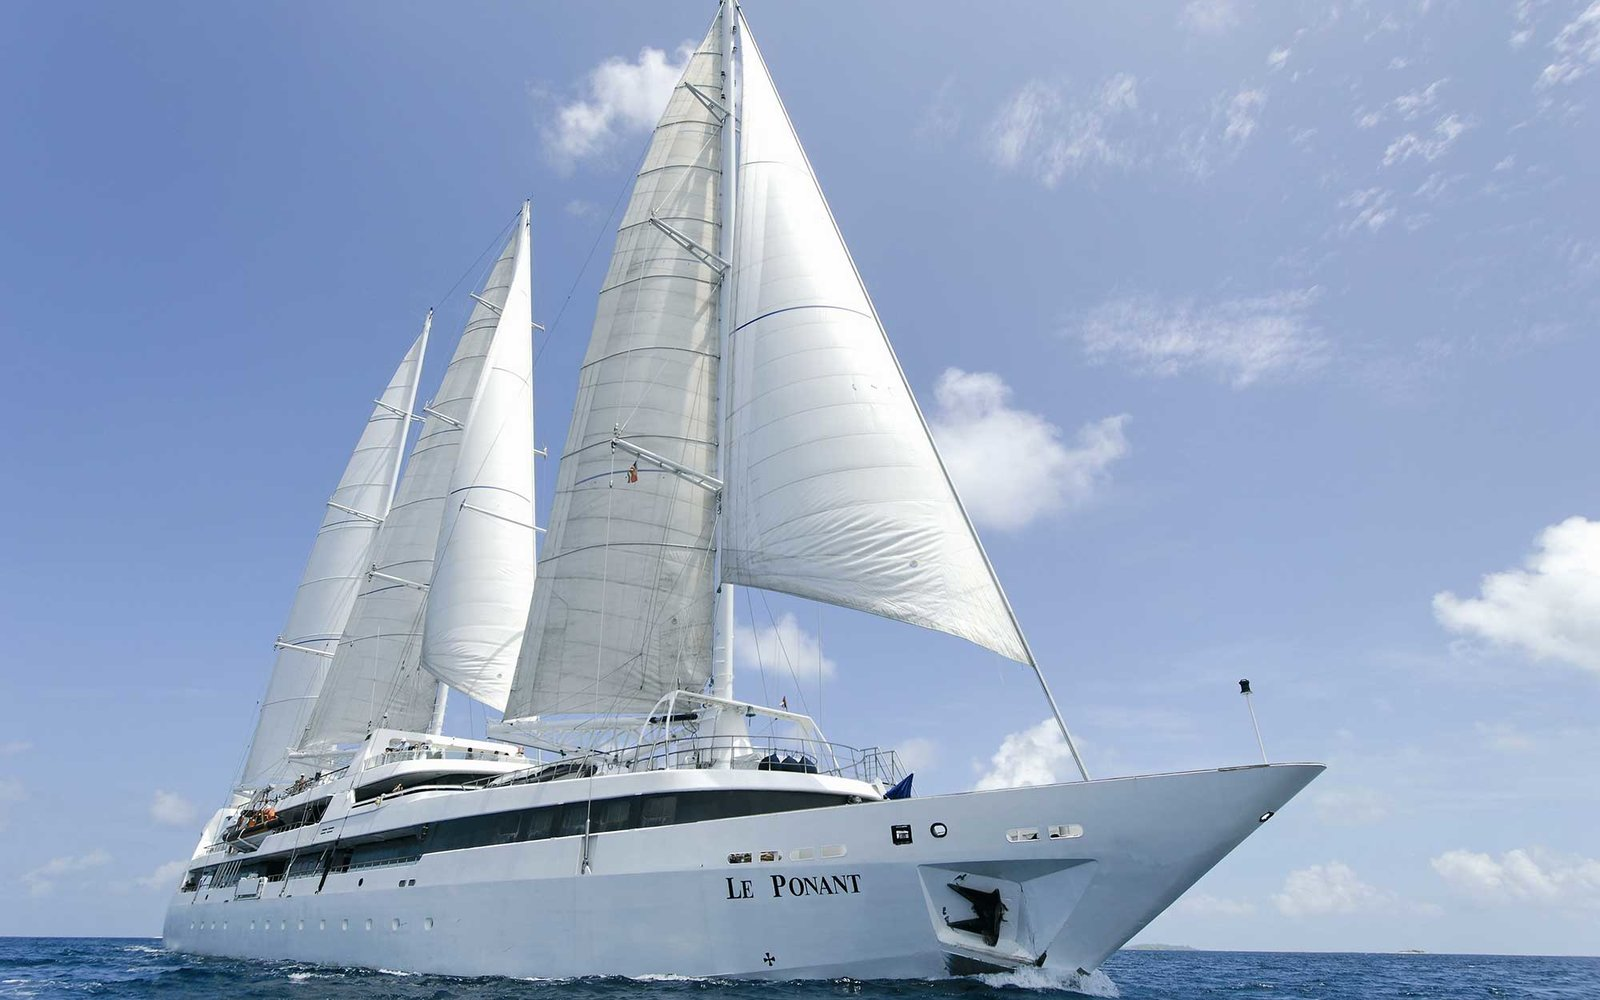 No. 4: Ponant Yacht Cruises & Expeditions